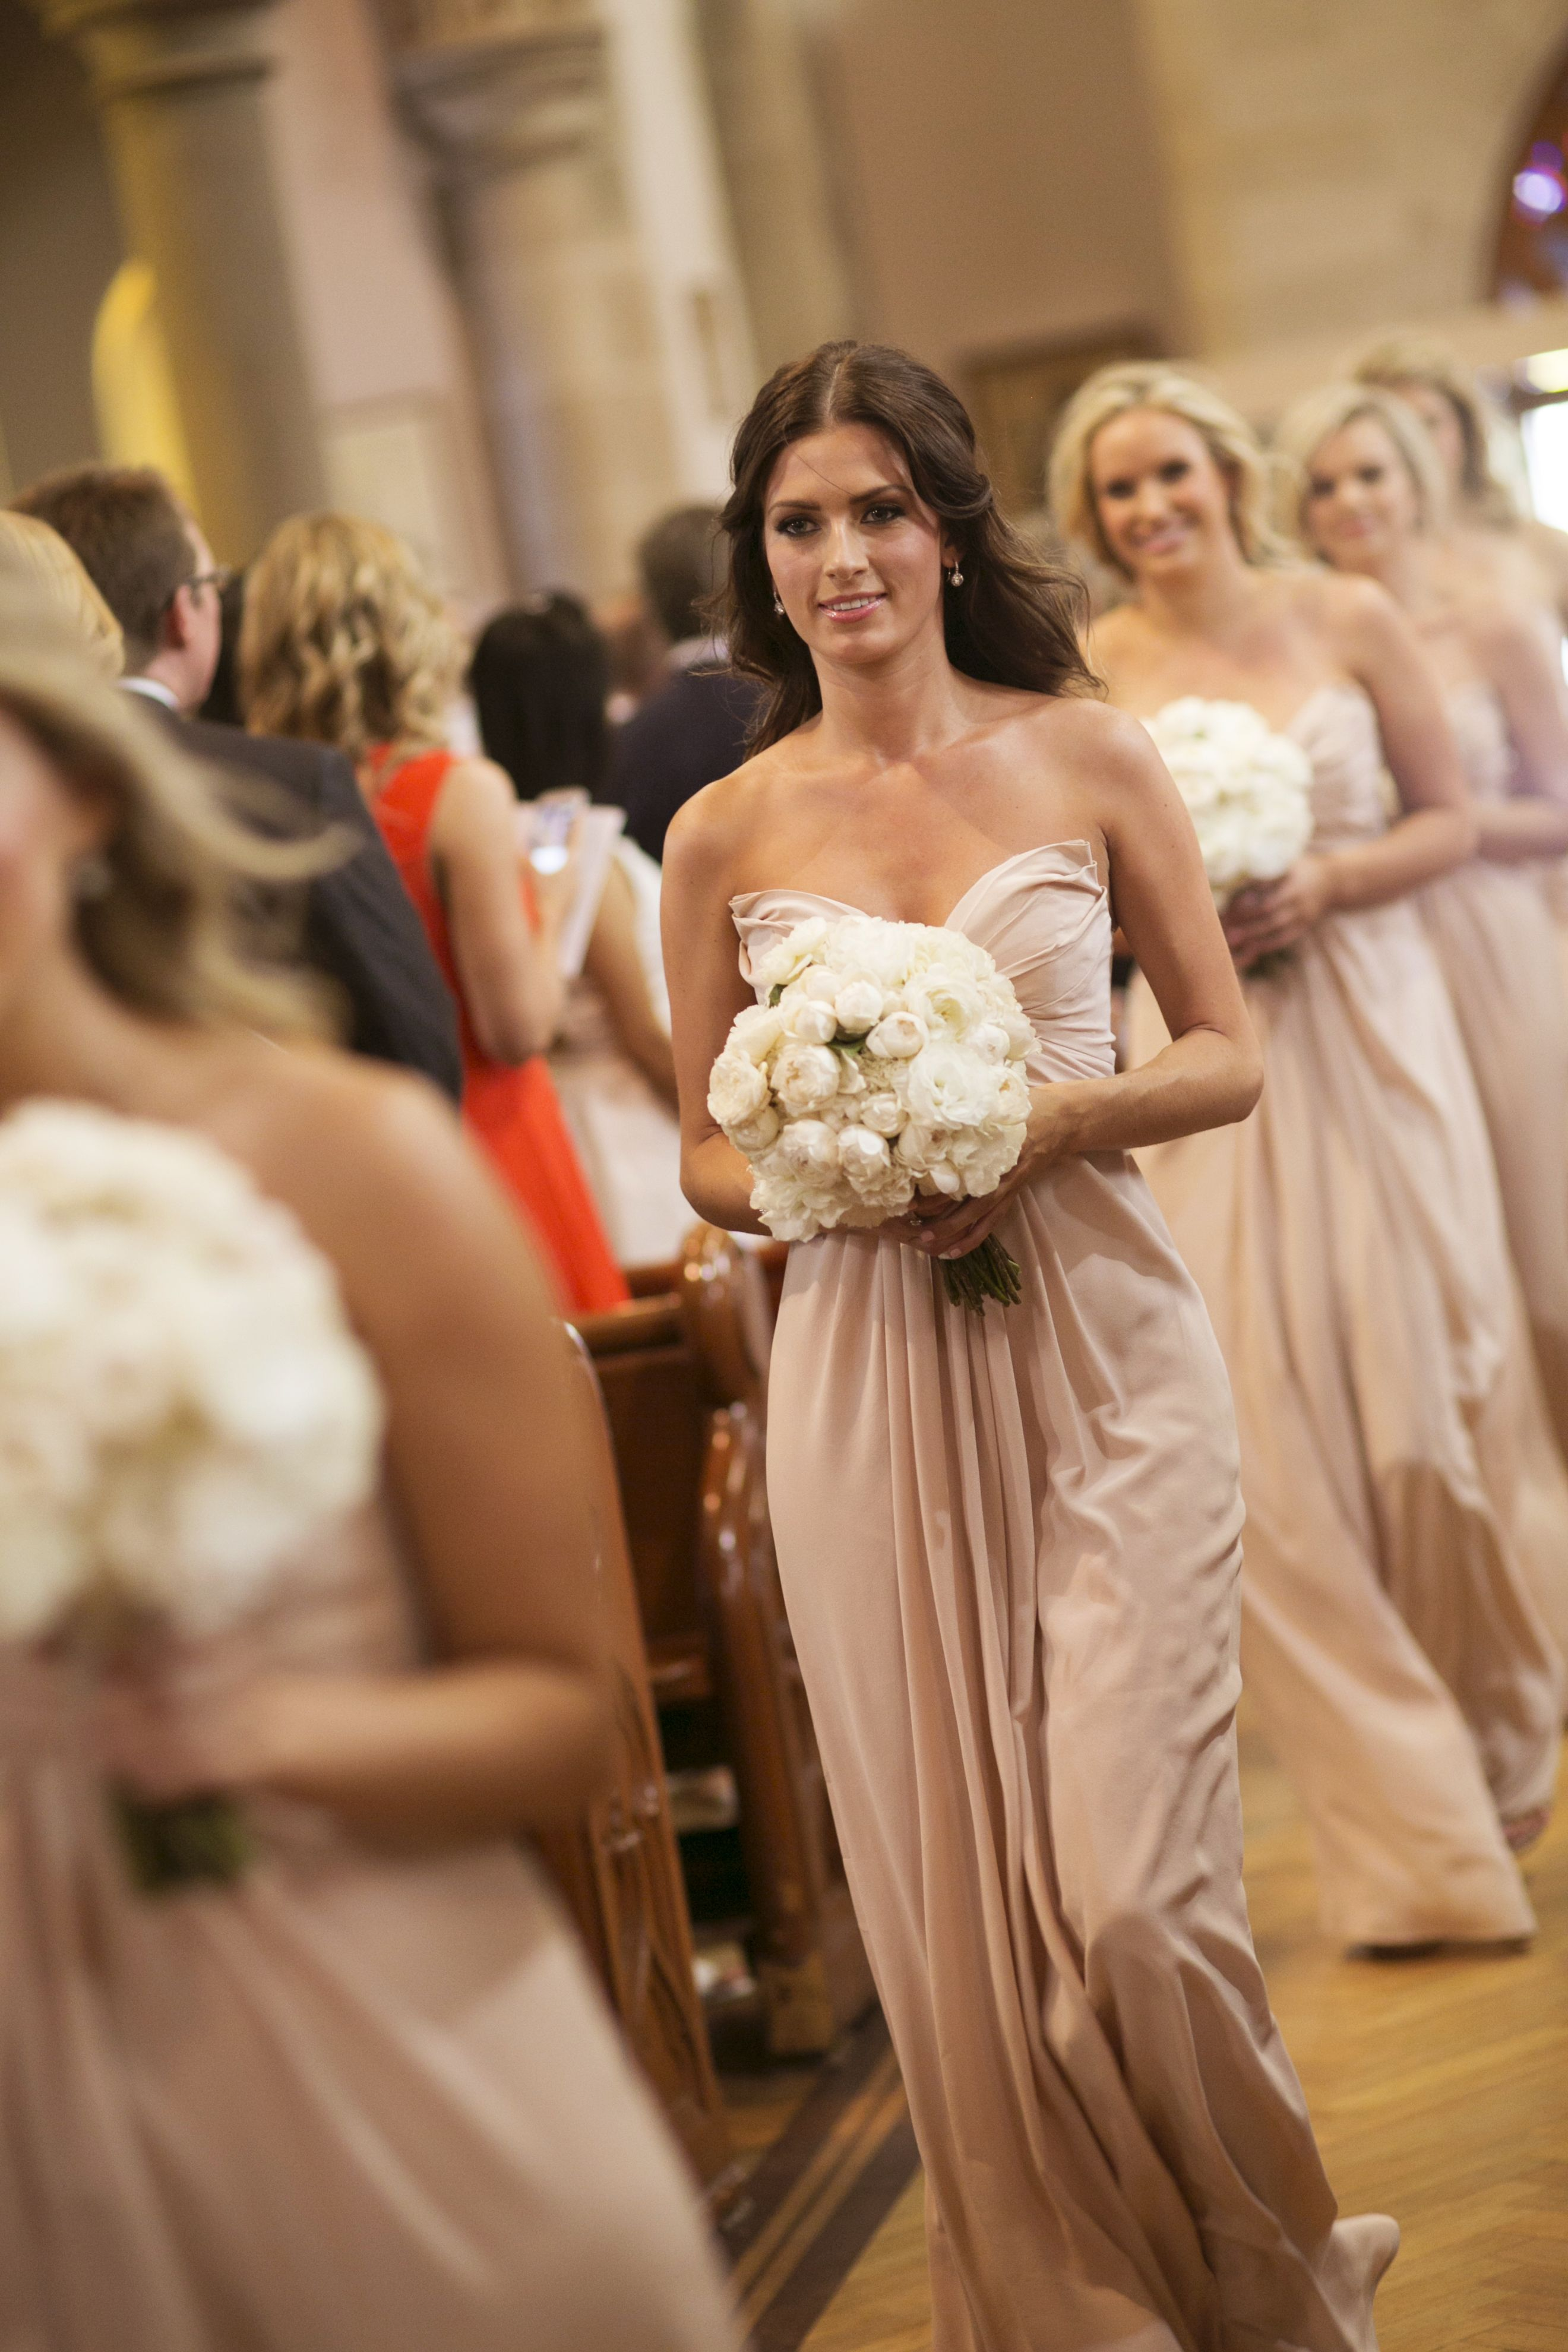 Blush bridesmaid dresses and white bouquet | itakeyou.co.uk